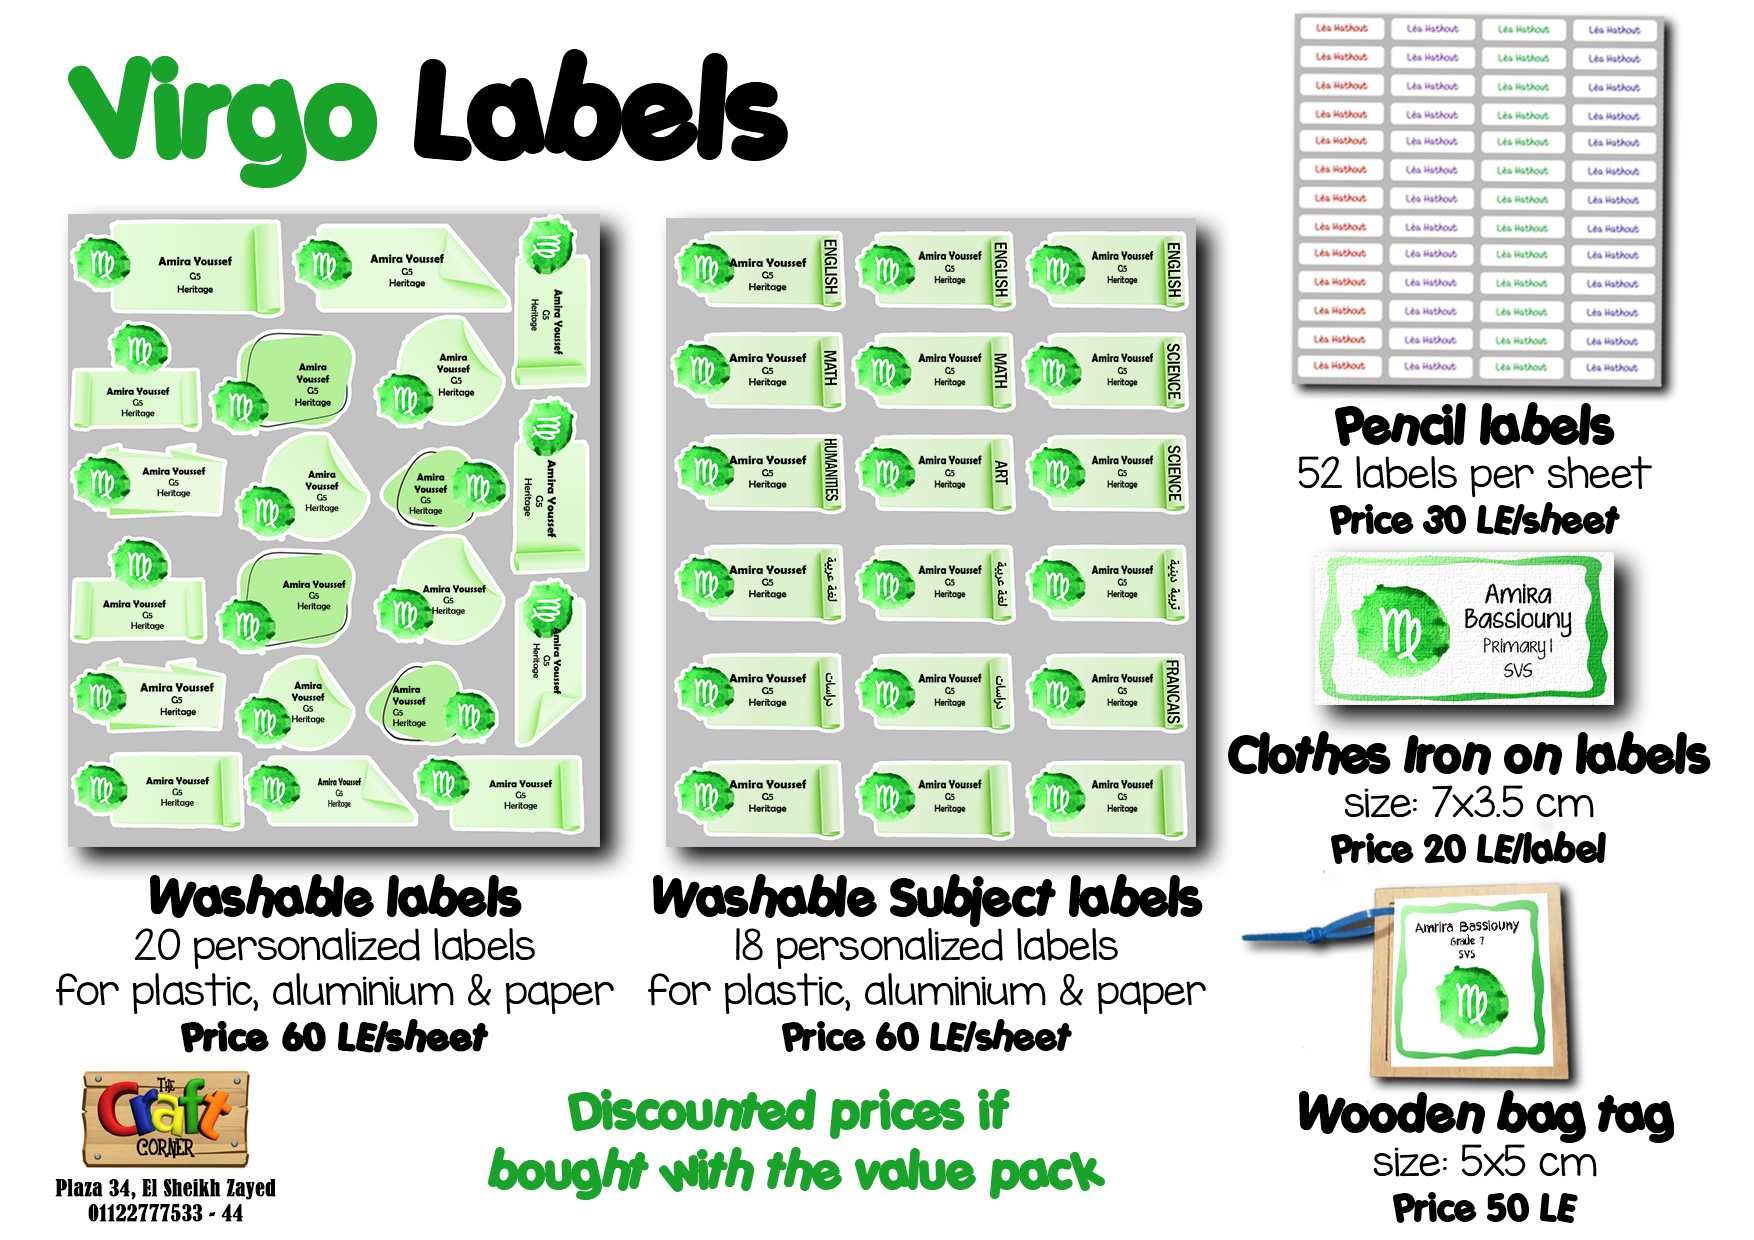 virgo Labels